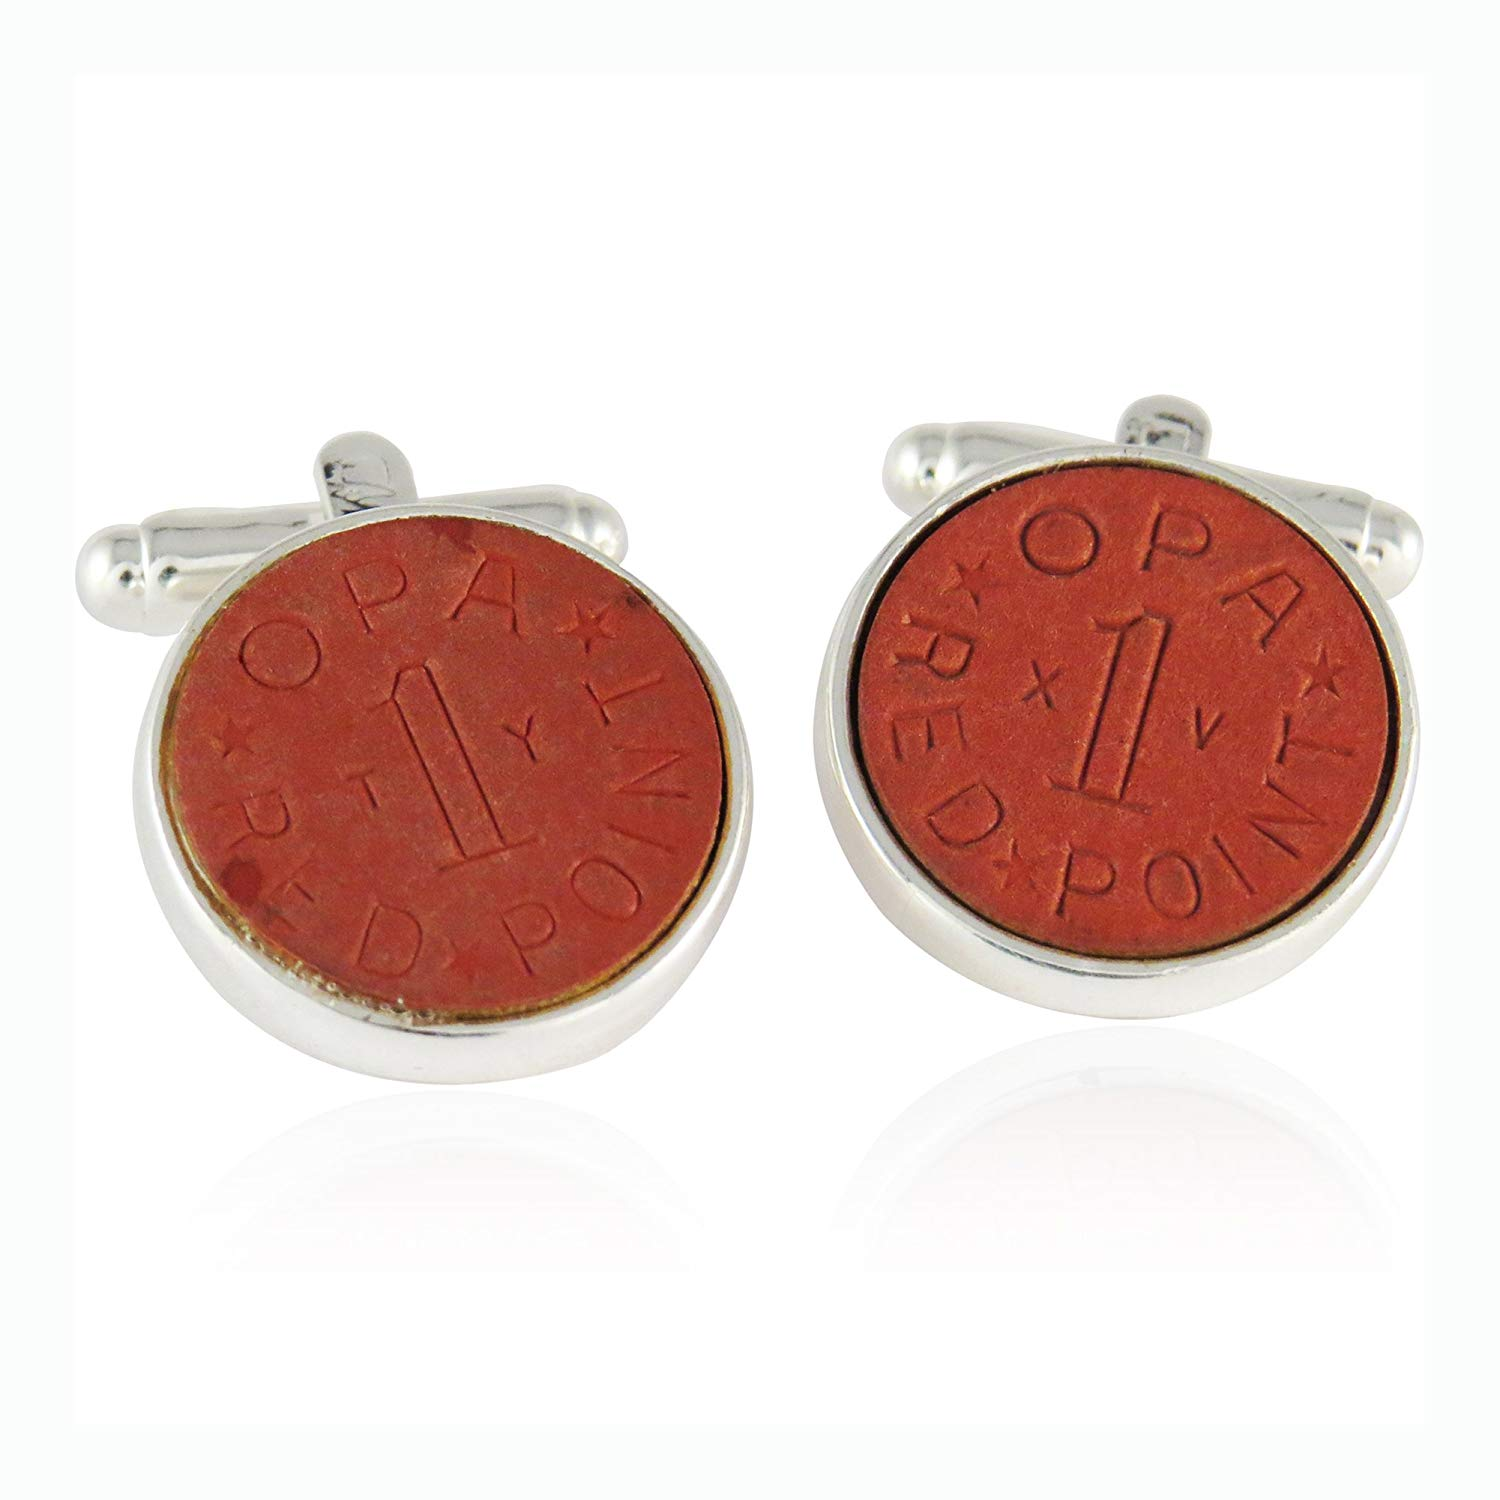 OPA Red Point WWII Ration Cufflinks Clad in Sterling Silver By Jewelry Mountain